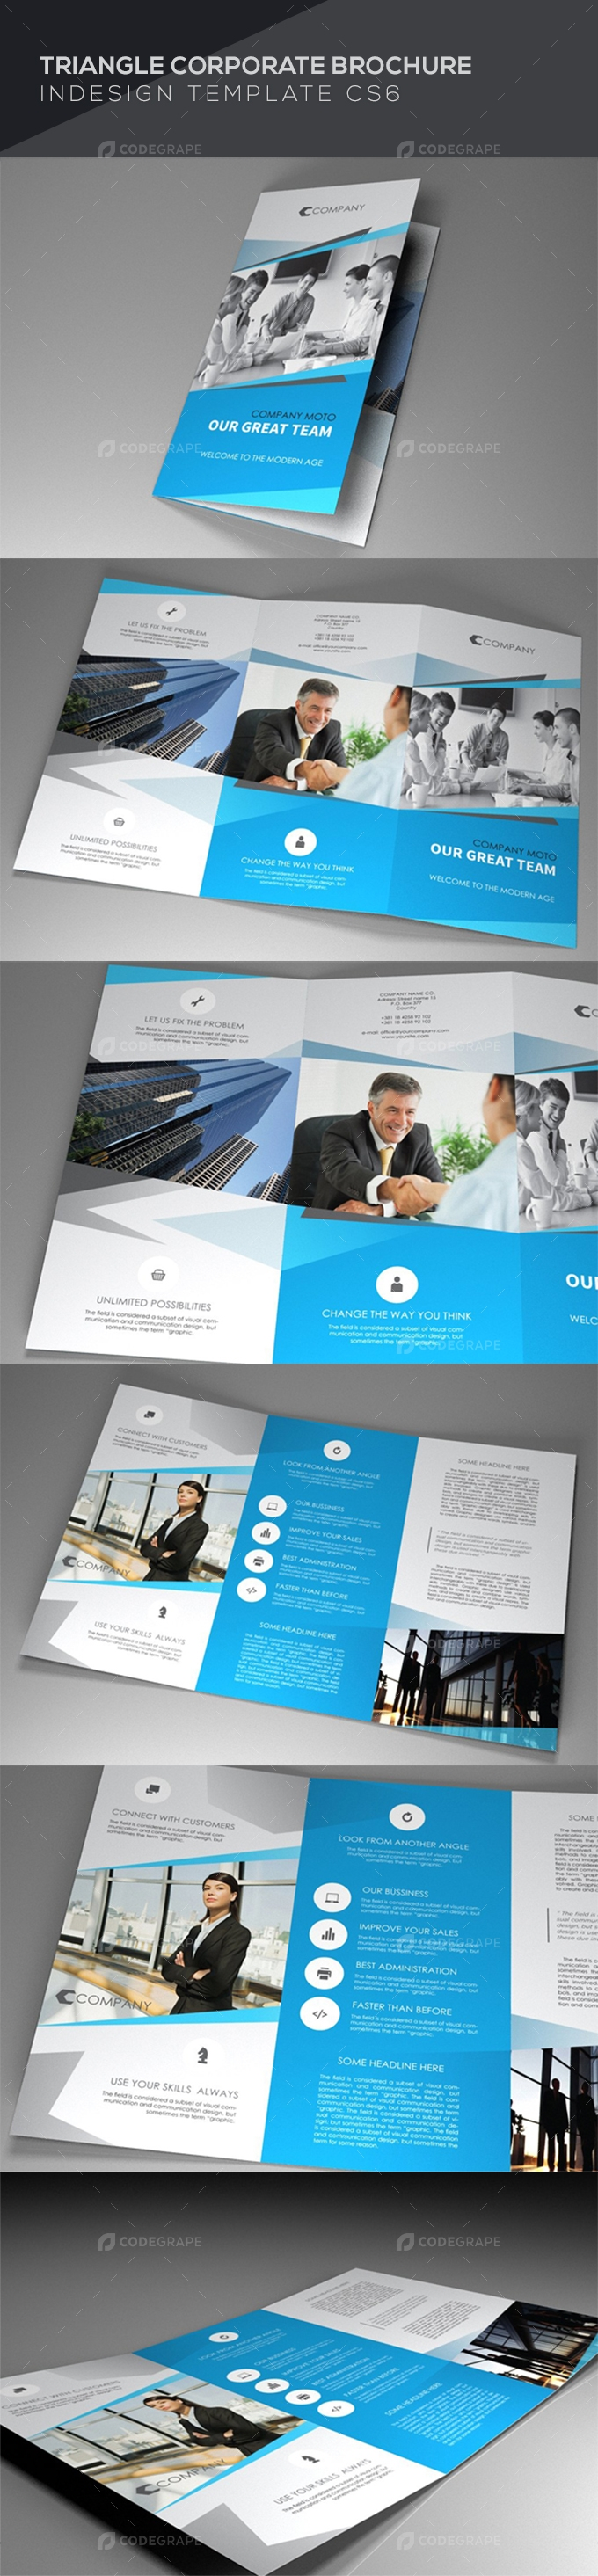 Indesign Brochure Triangle